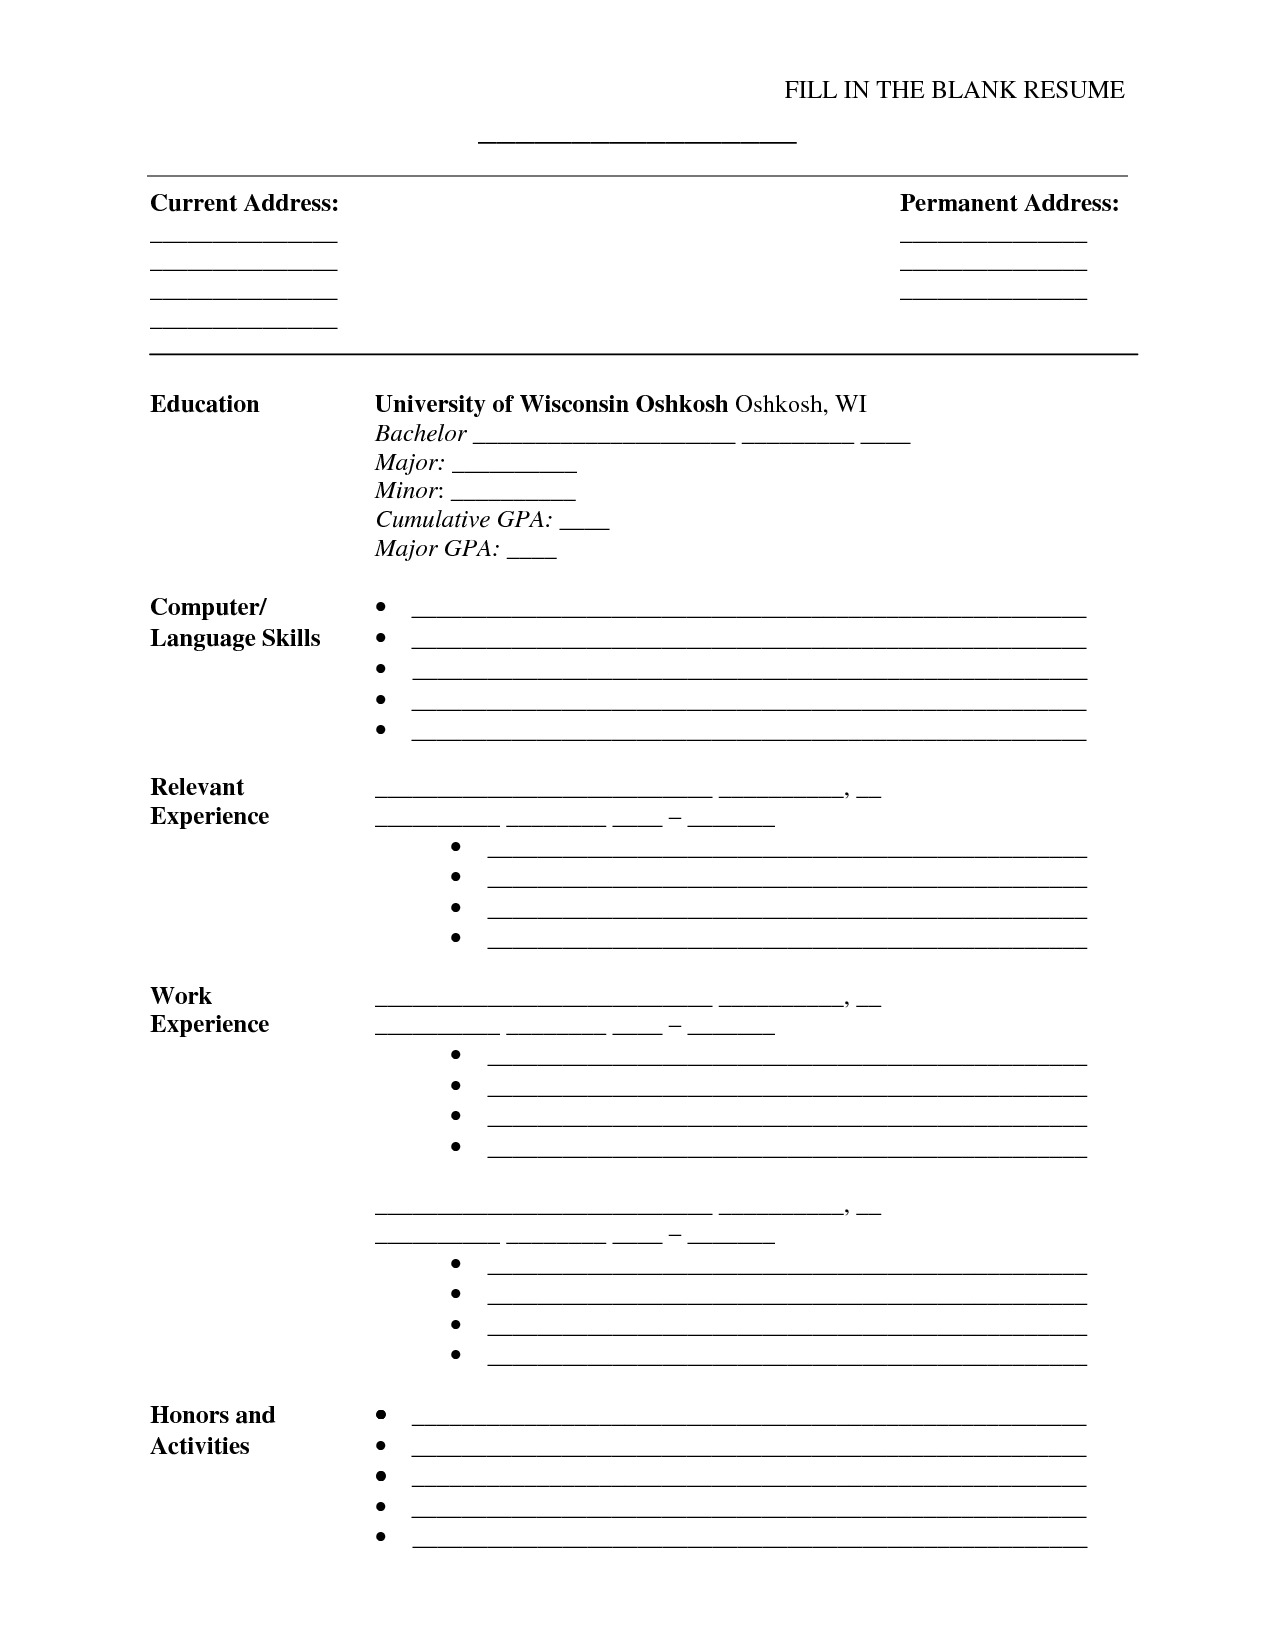 High Quality Fill In The Blank Resume PDF   Http://www.resumecareer.info And Blank Resume Pdf